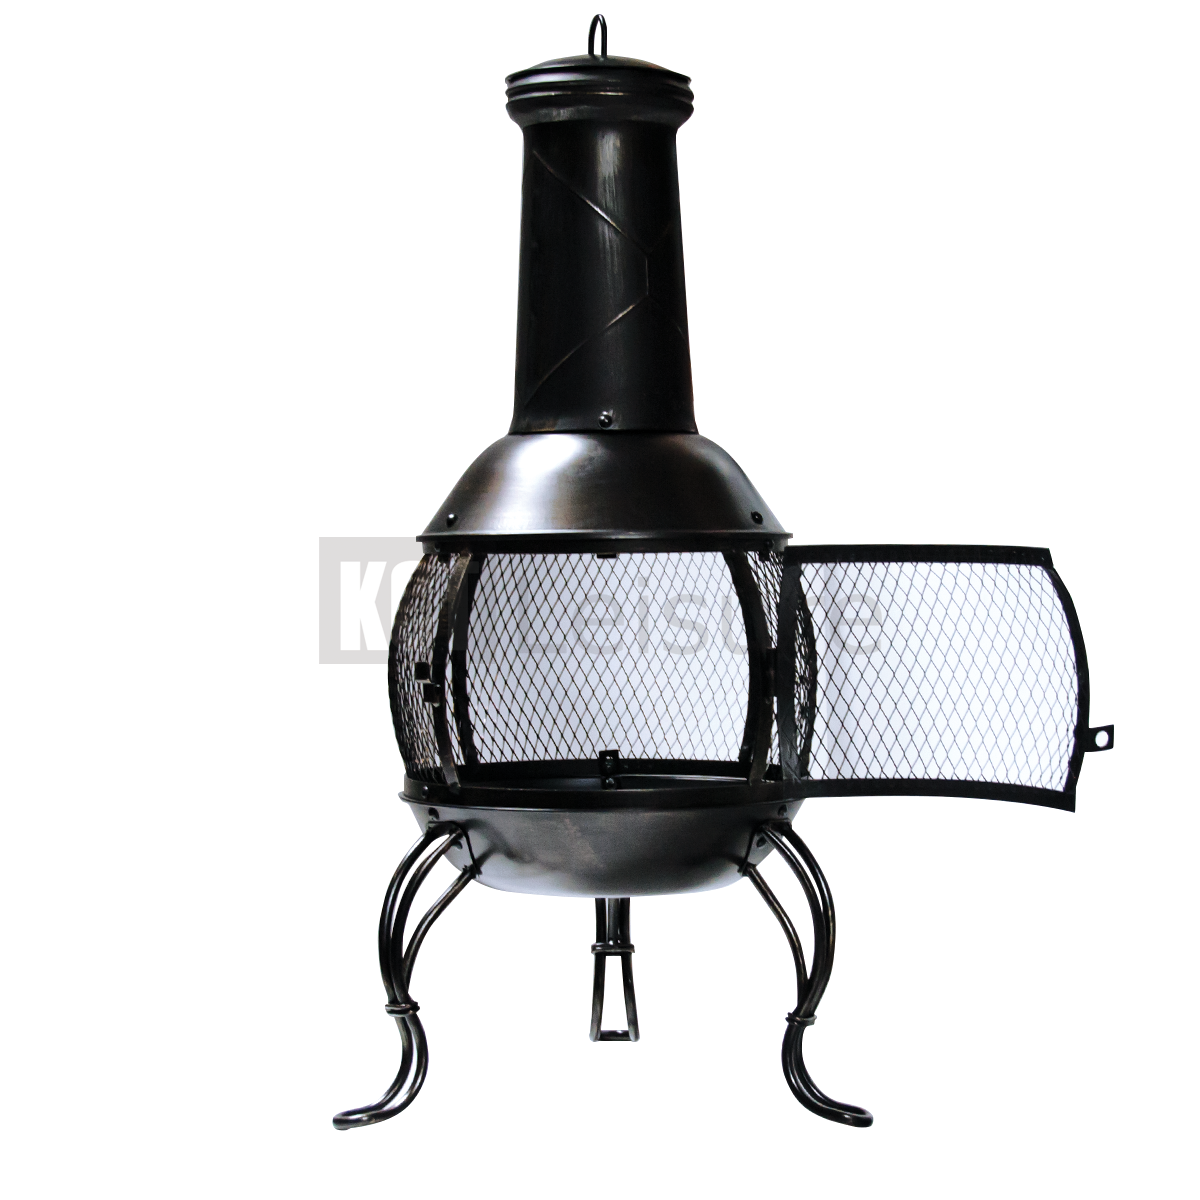 classical chiminea garden patio heater with chimney outdoor log  - classical chiminea garden patio heater with chimney outdoor log wood burner